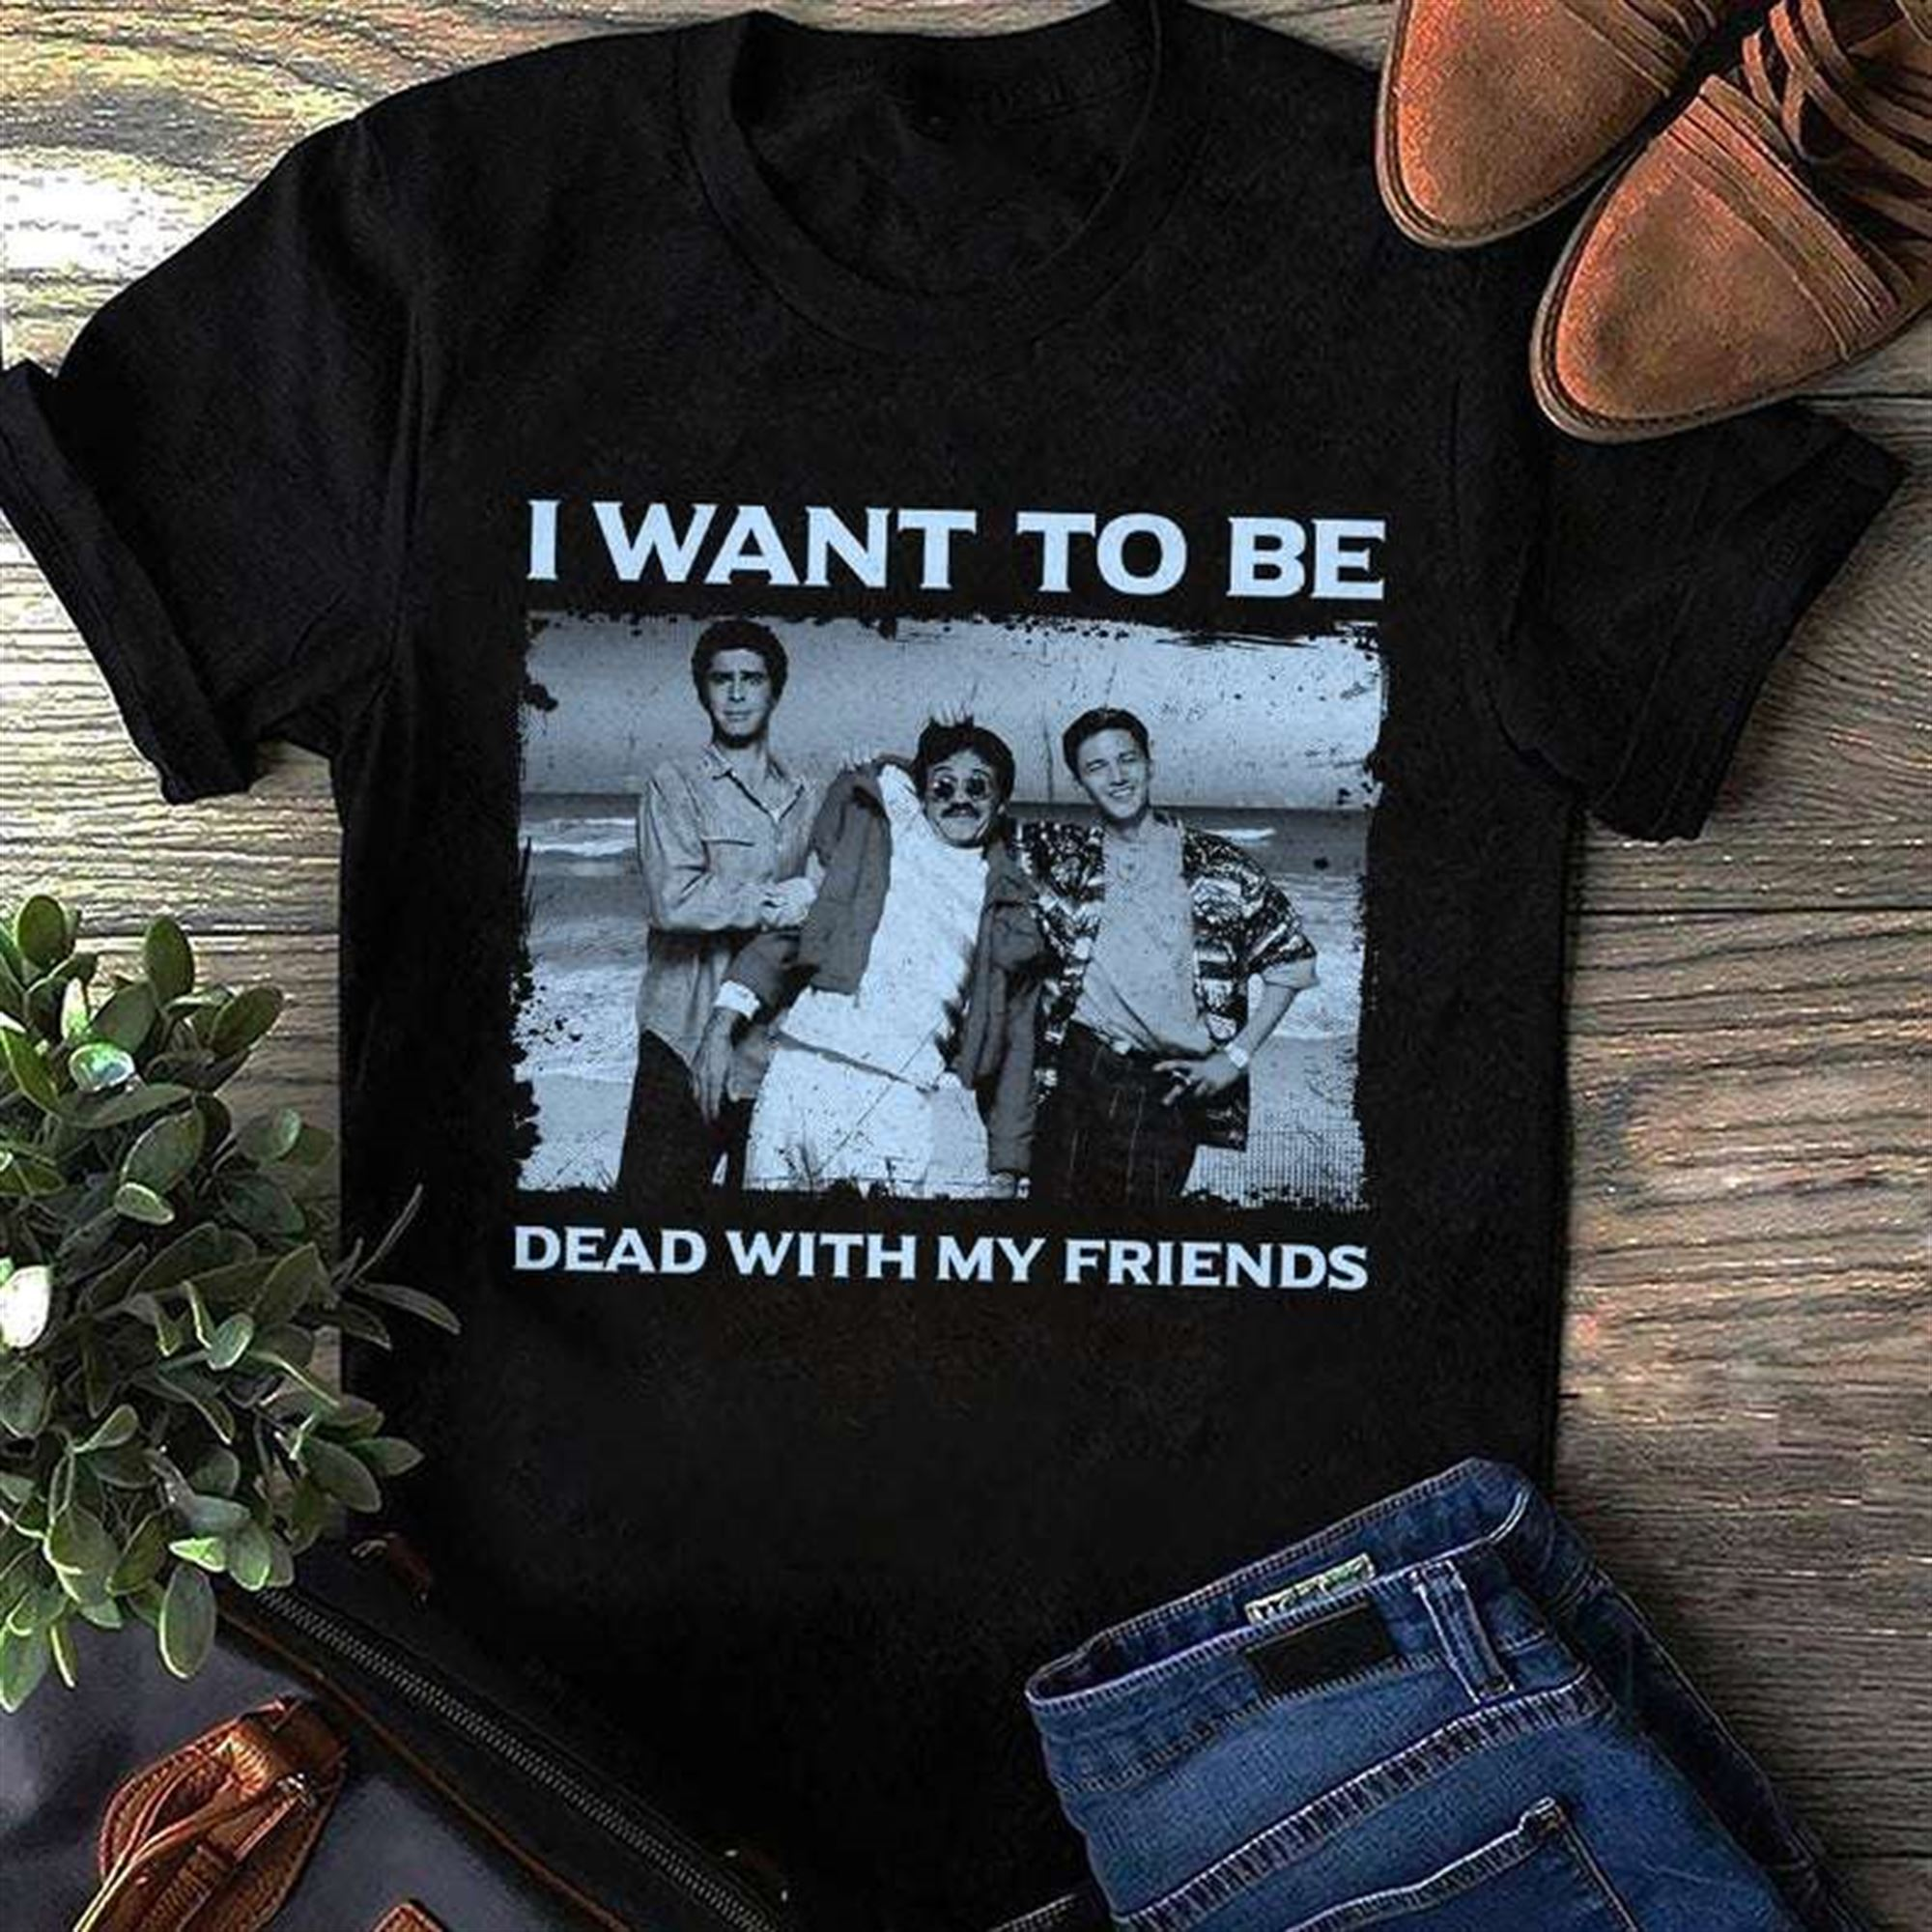 Weekend At Etid Tropical Every Time I Die Hardcore Punk T-shirt Plus Size Up To 5x